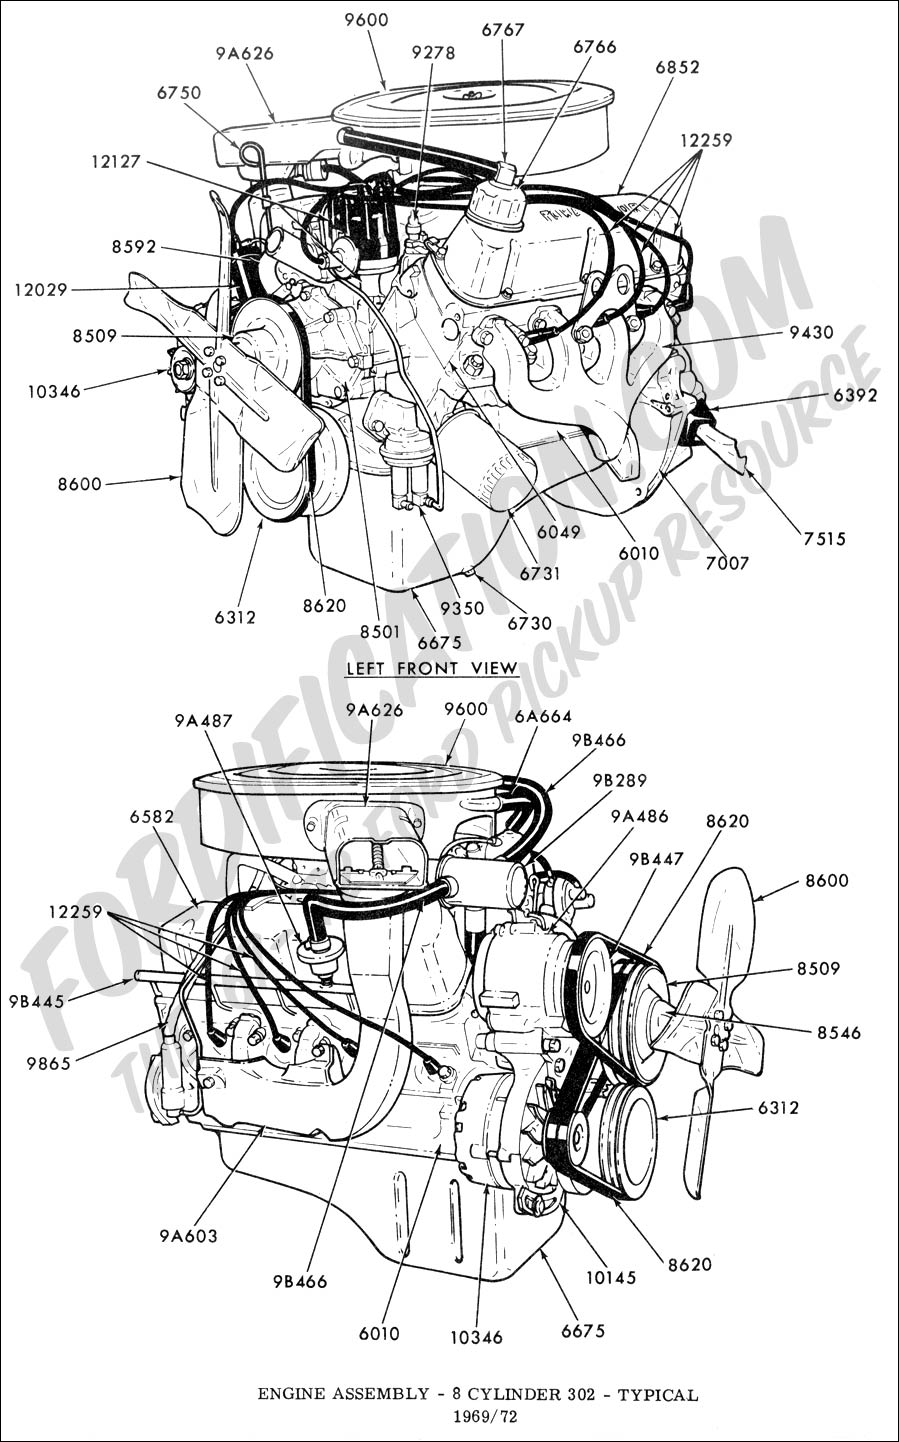 1969 chevy van wiring diagram with 1382435 on 310419931280 besides Brake line diagram 2000 silverado as well T 154456 furthermore respond further 1965 Buick Riviera Headlight Wiring Diagram.